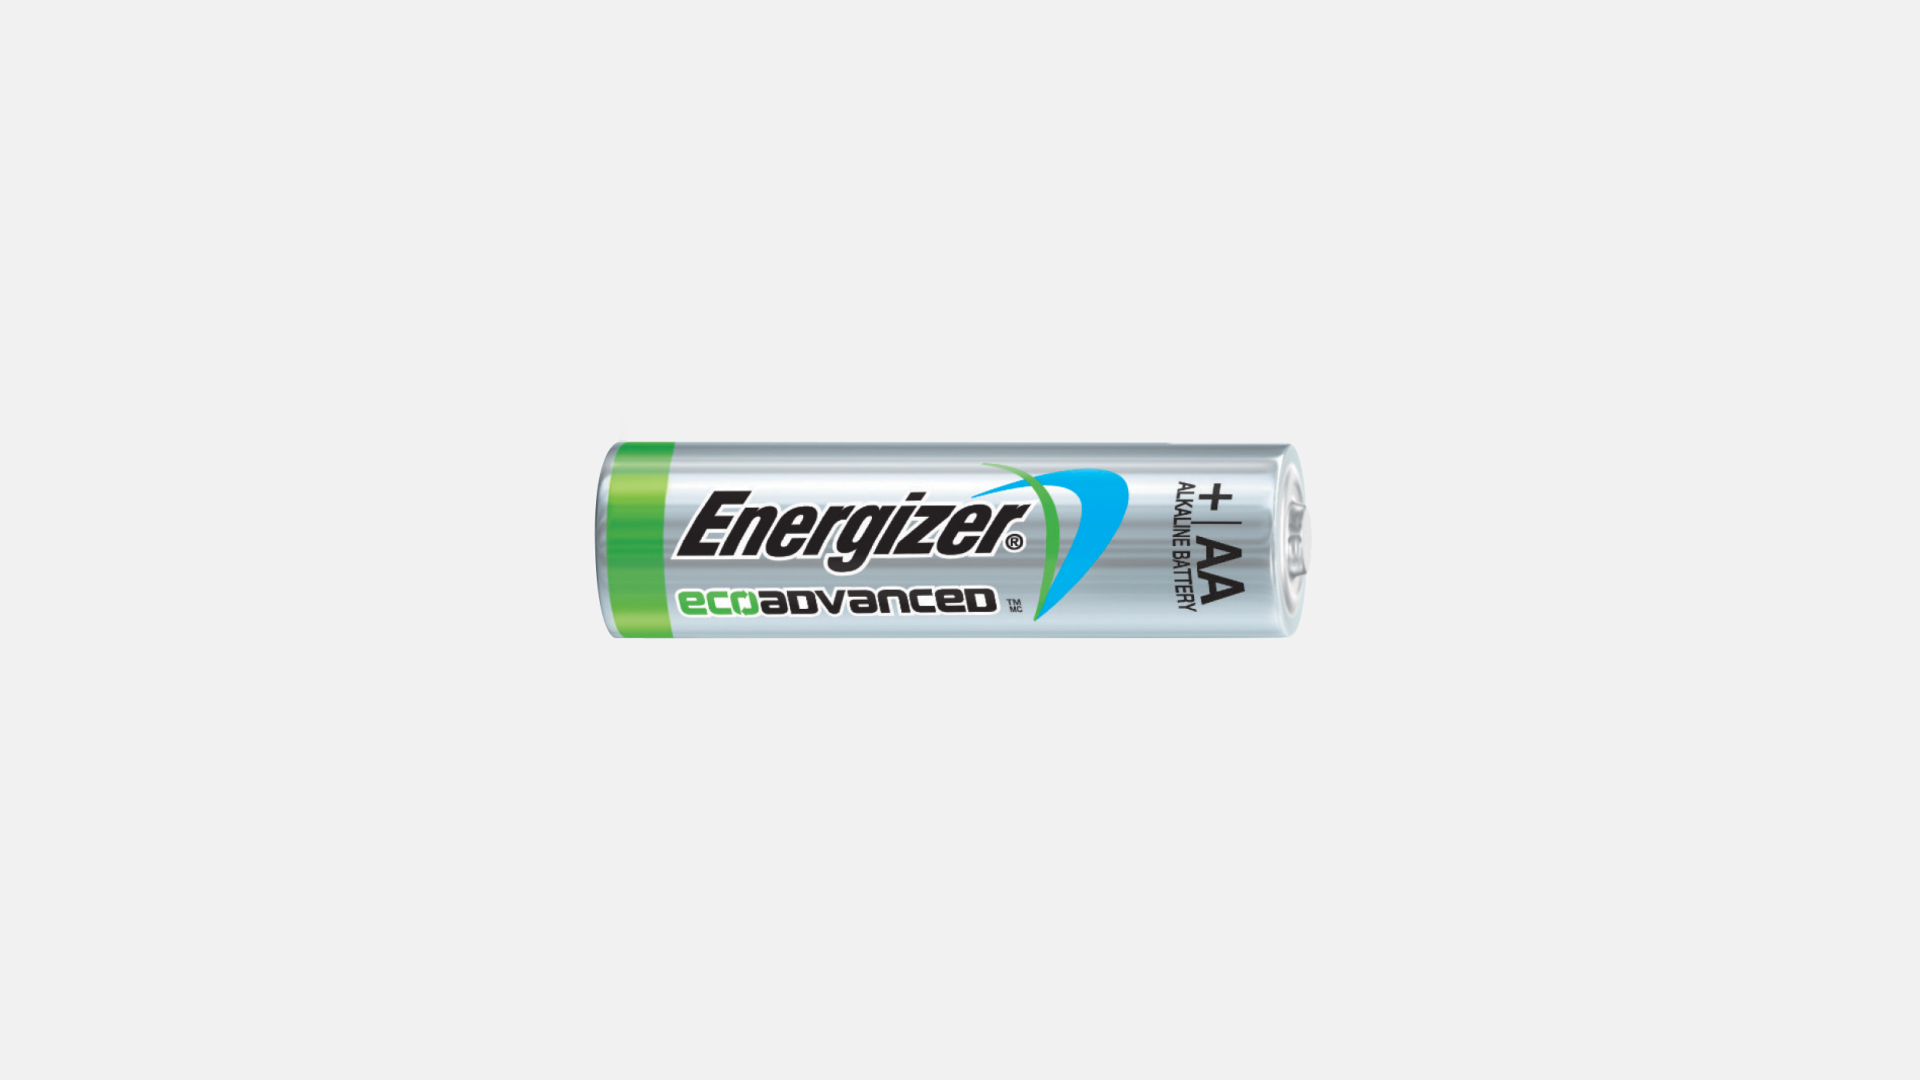 Energizer_Battery_5.8.2015_02004